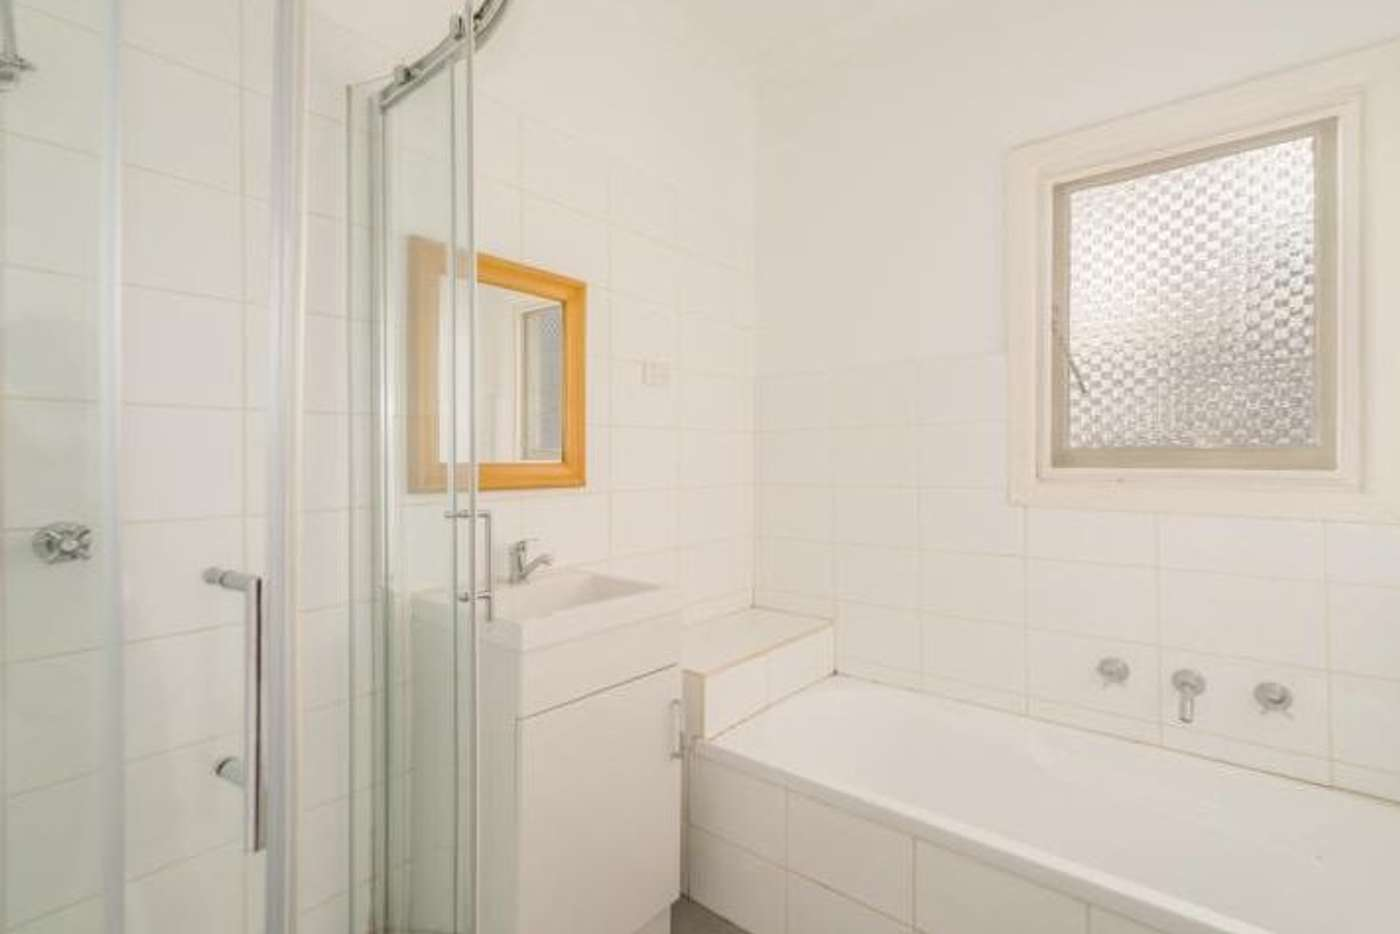 Sixth view of Homely house listing, 1/958 Station Street, Box Hill North VIC 3129